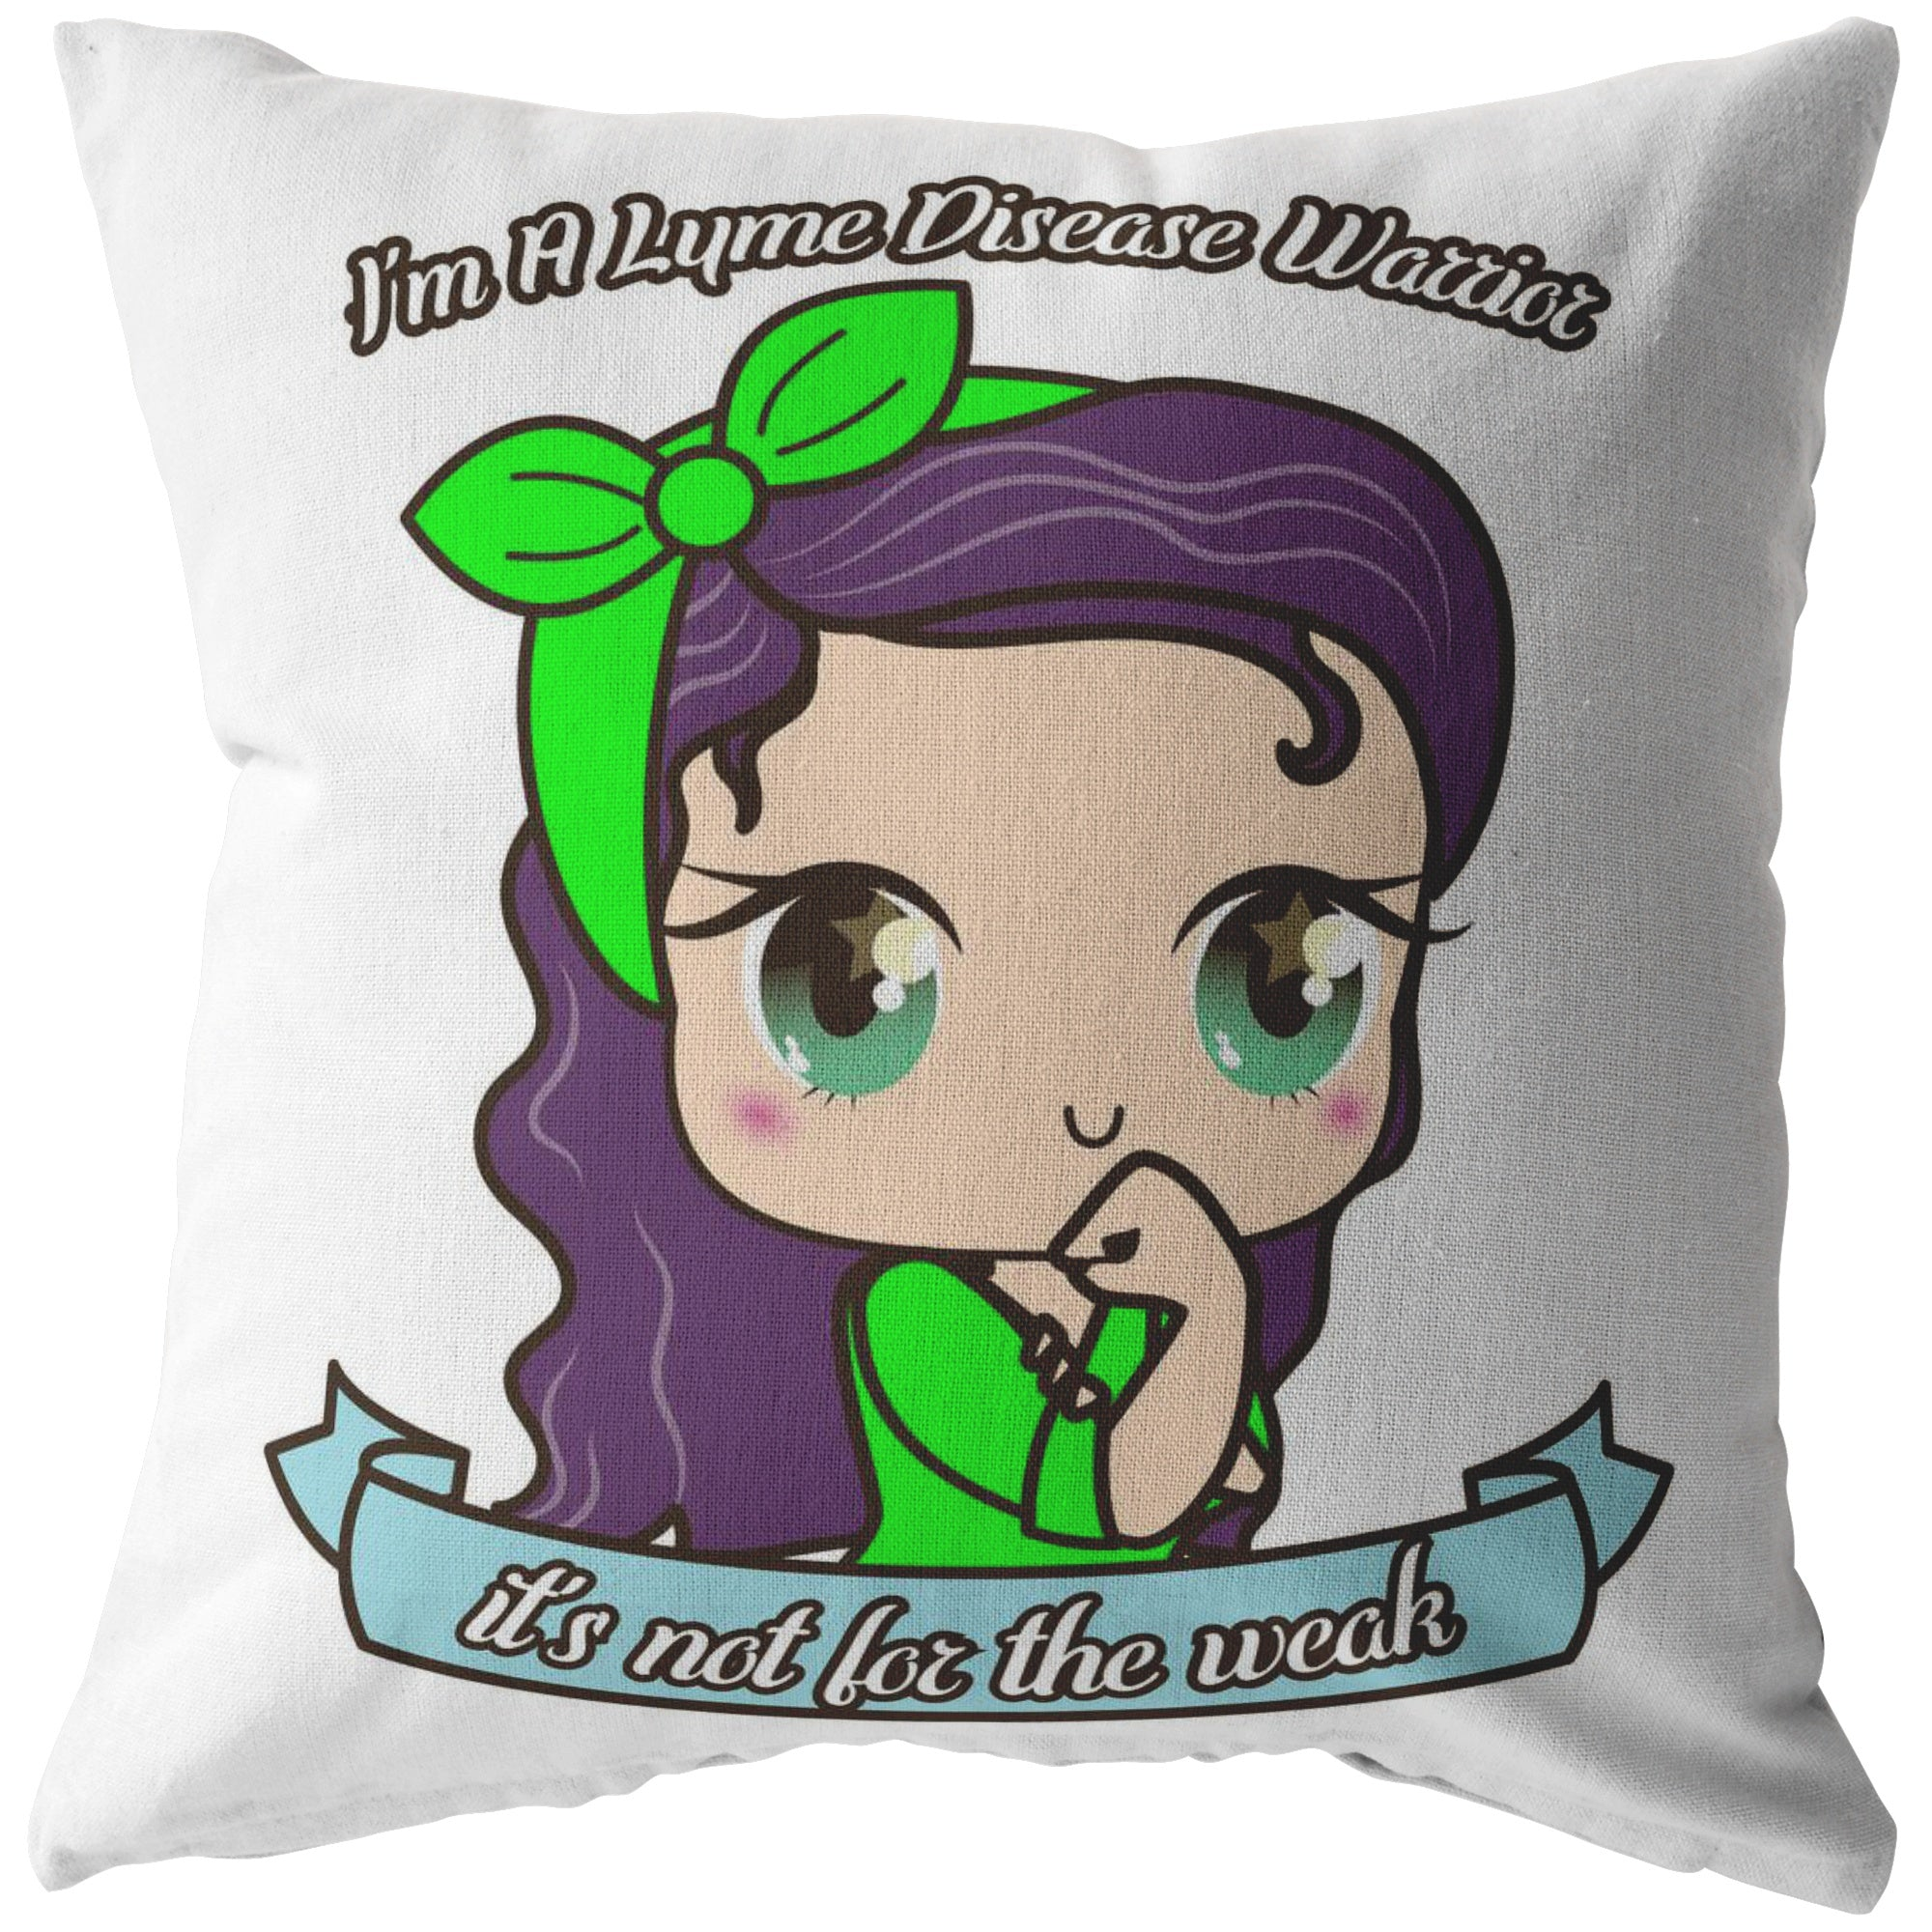 Cute Lyme Disease Warrior Pillow - The Unchargeables